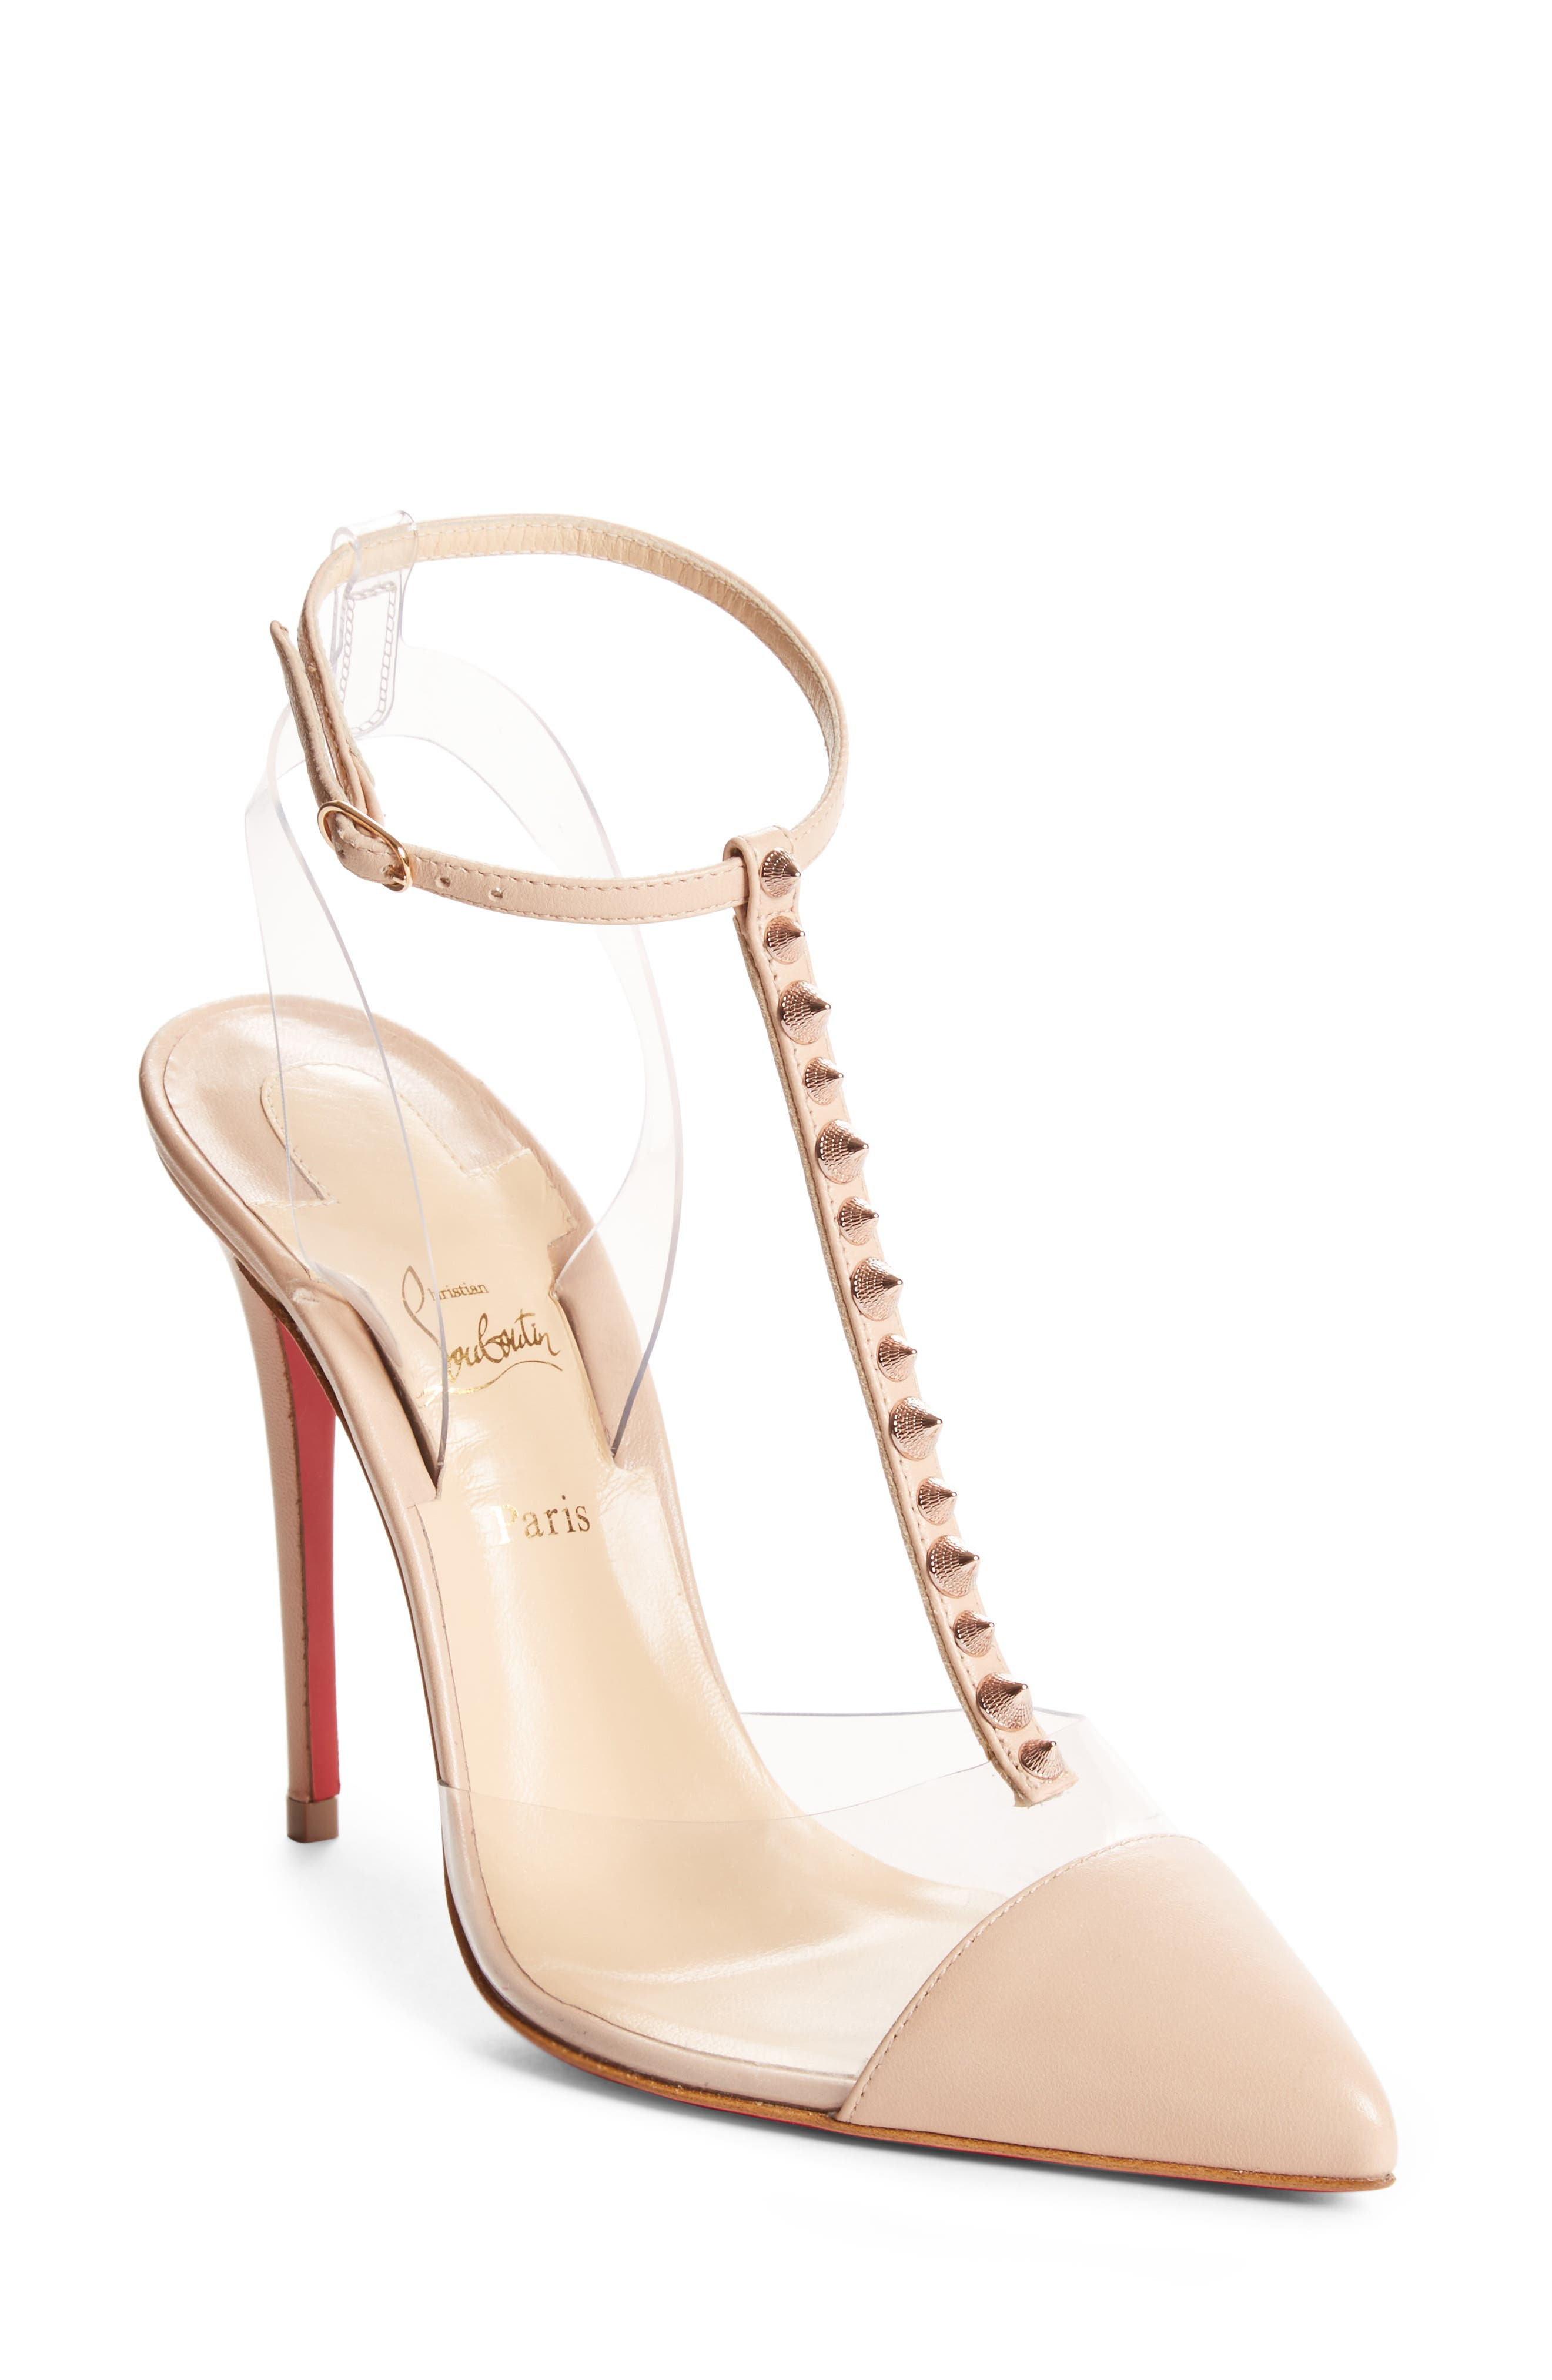 christian louboutin white pump